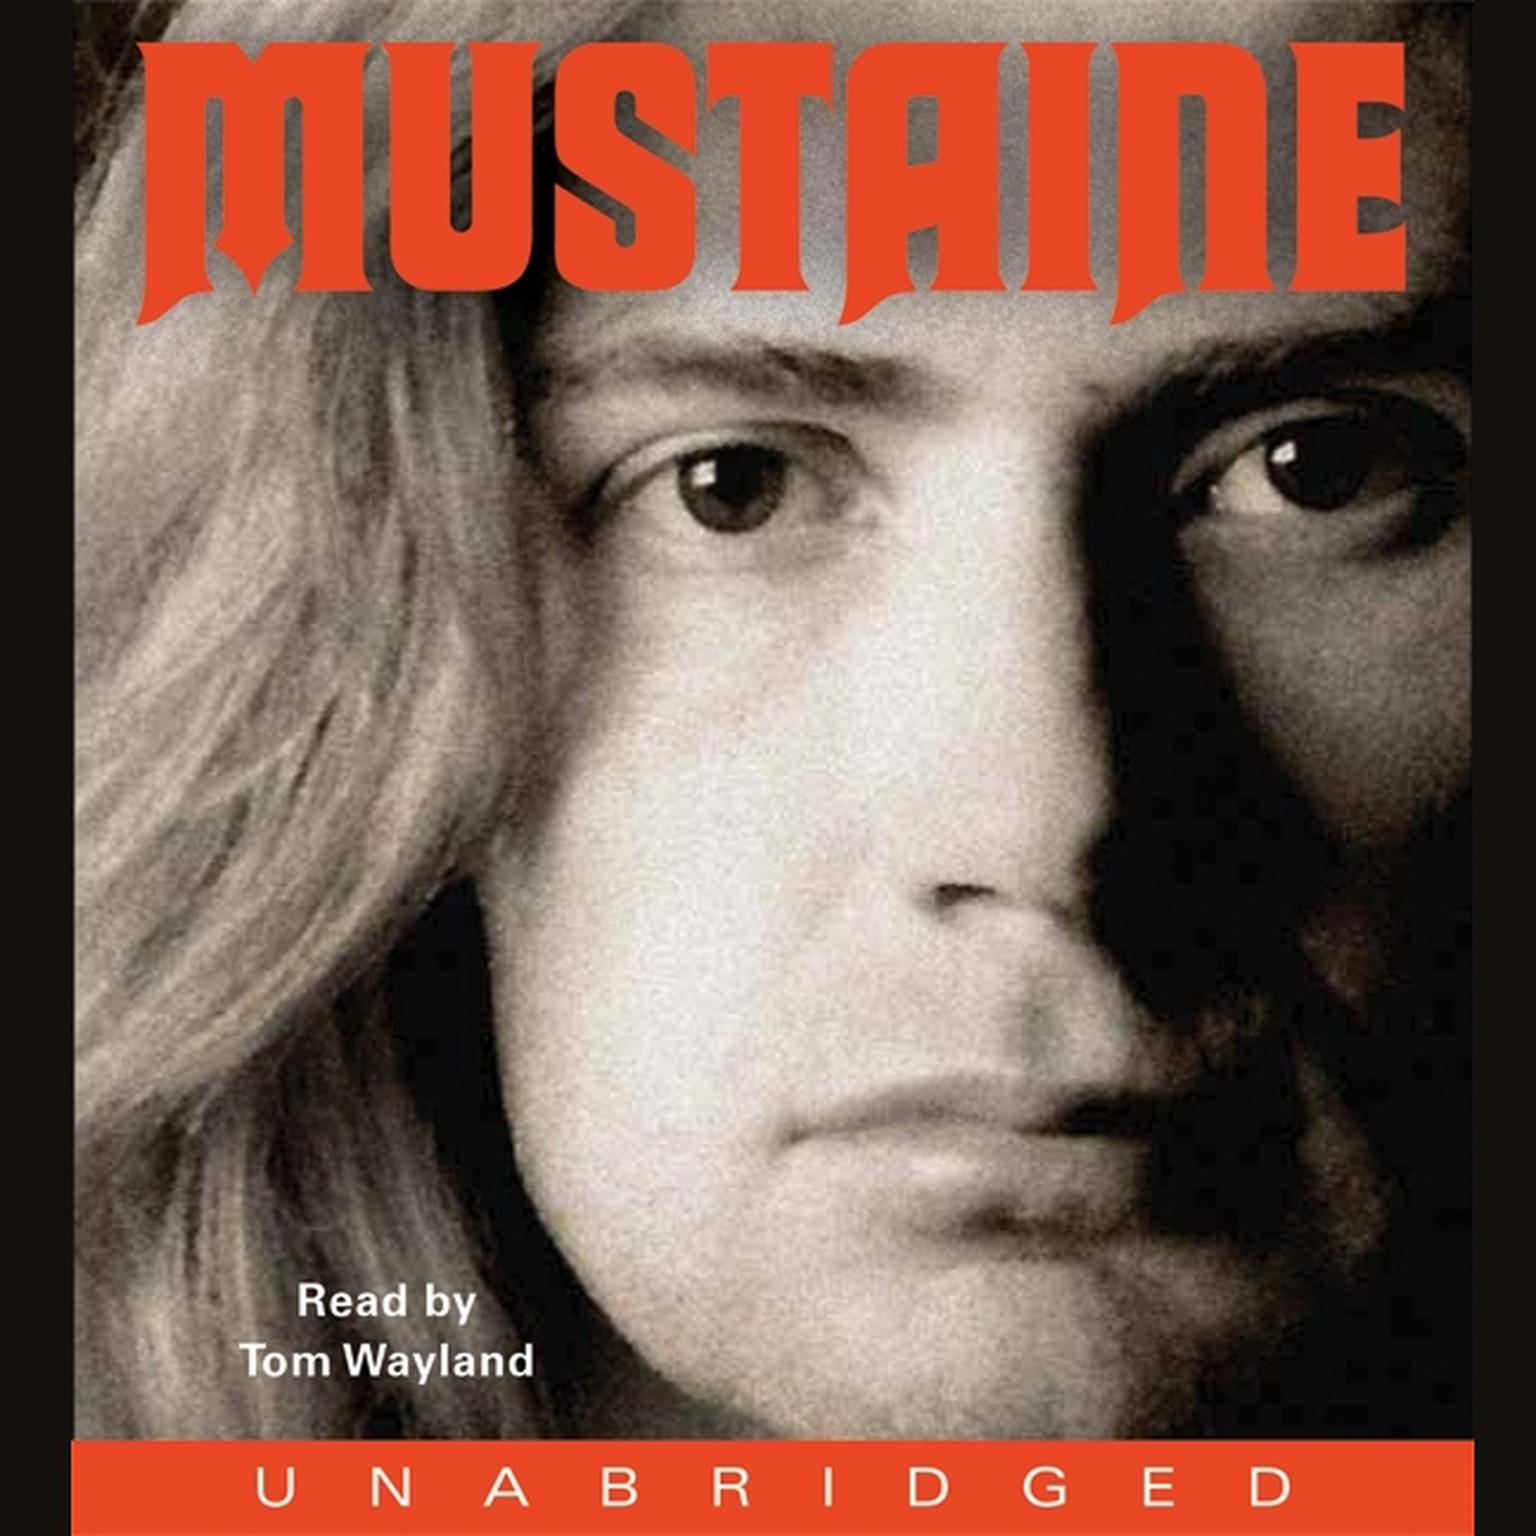 Printable Mustaine: A Heavy Metal Memoir Audiobook Cover Art